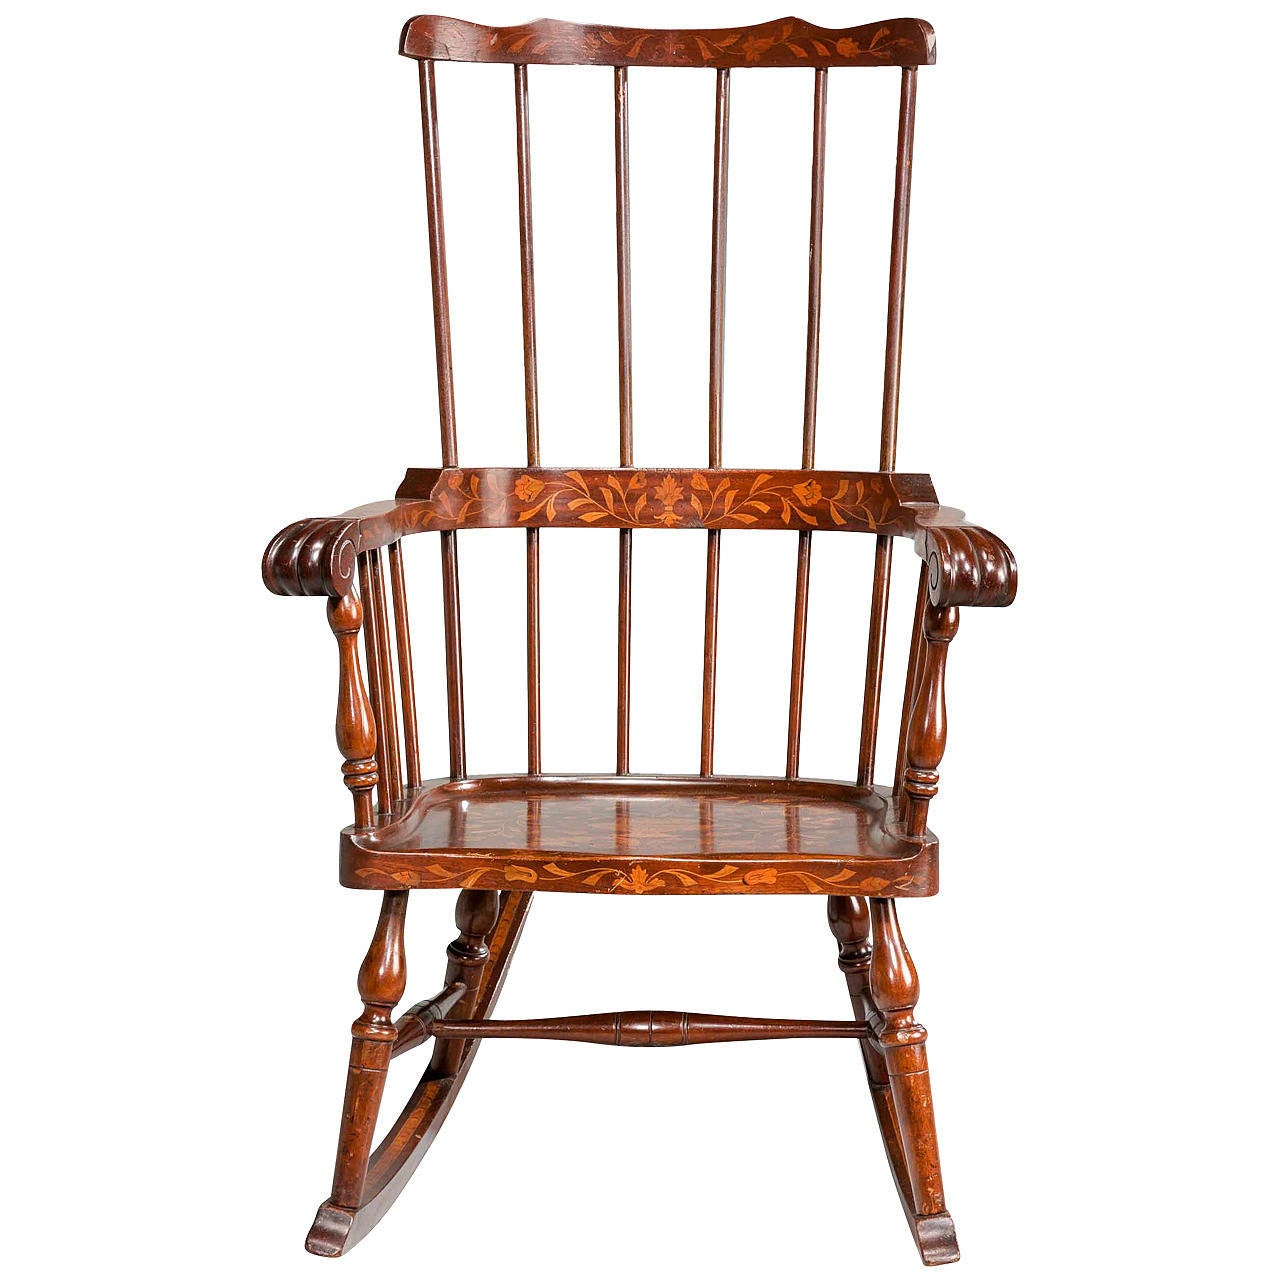 Basket Weaving Peterborough : Th century dutch marquetry rocking chair at stdibs